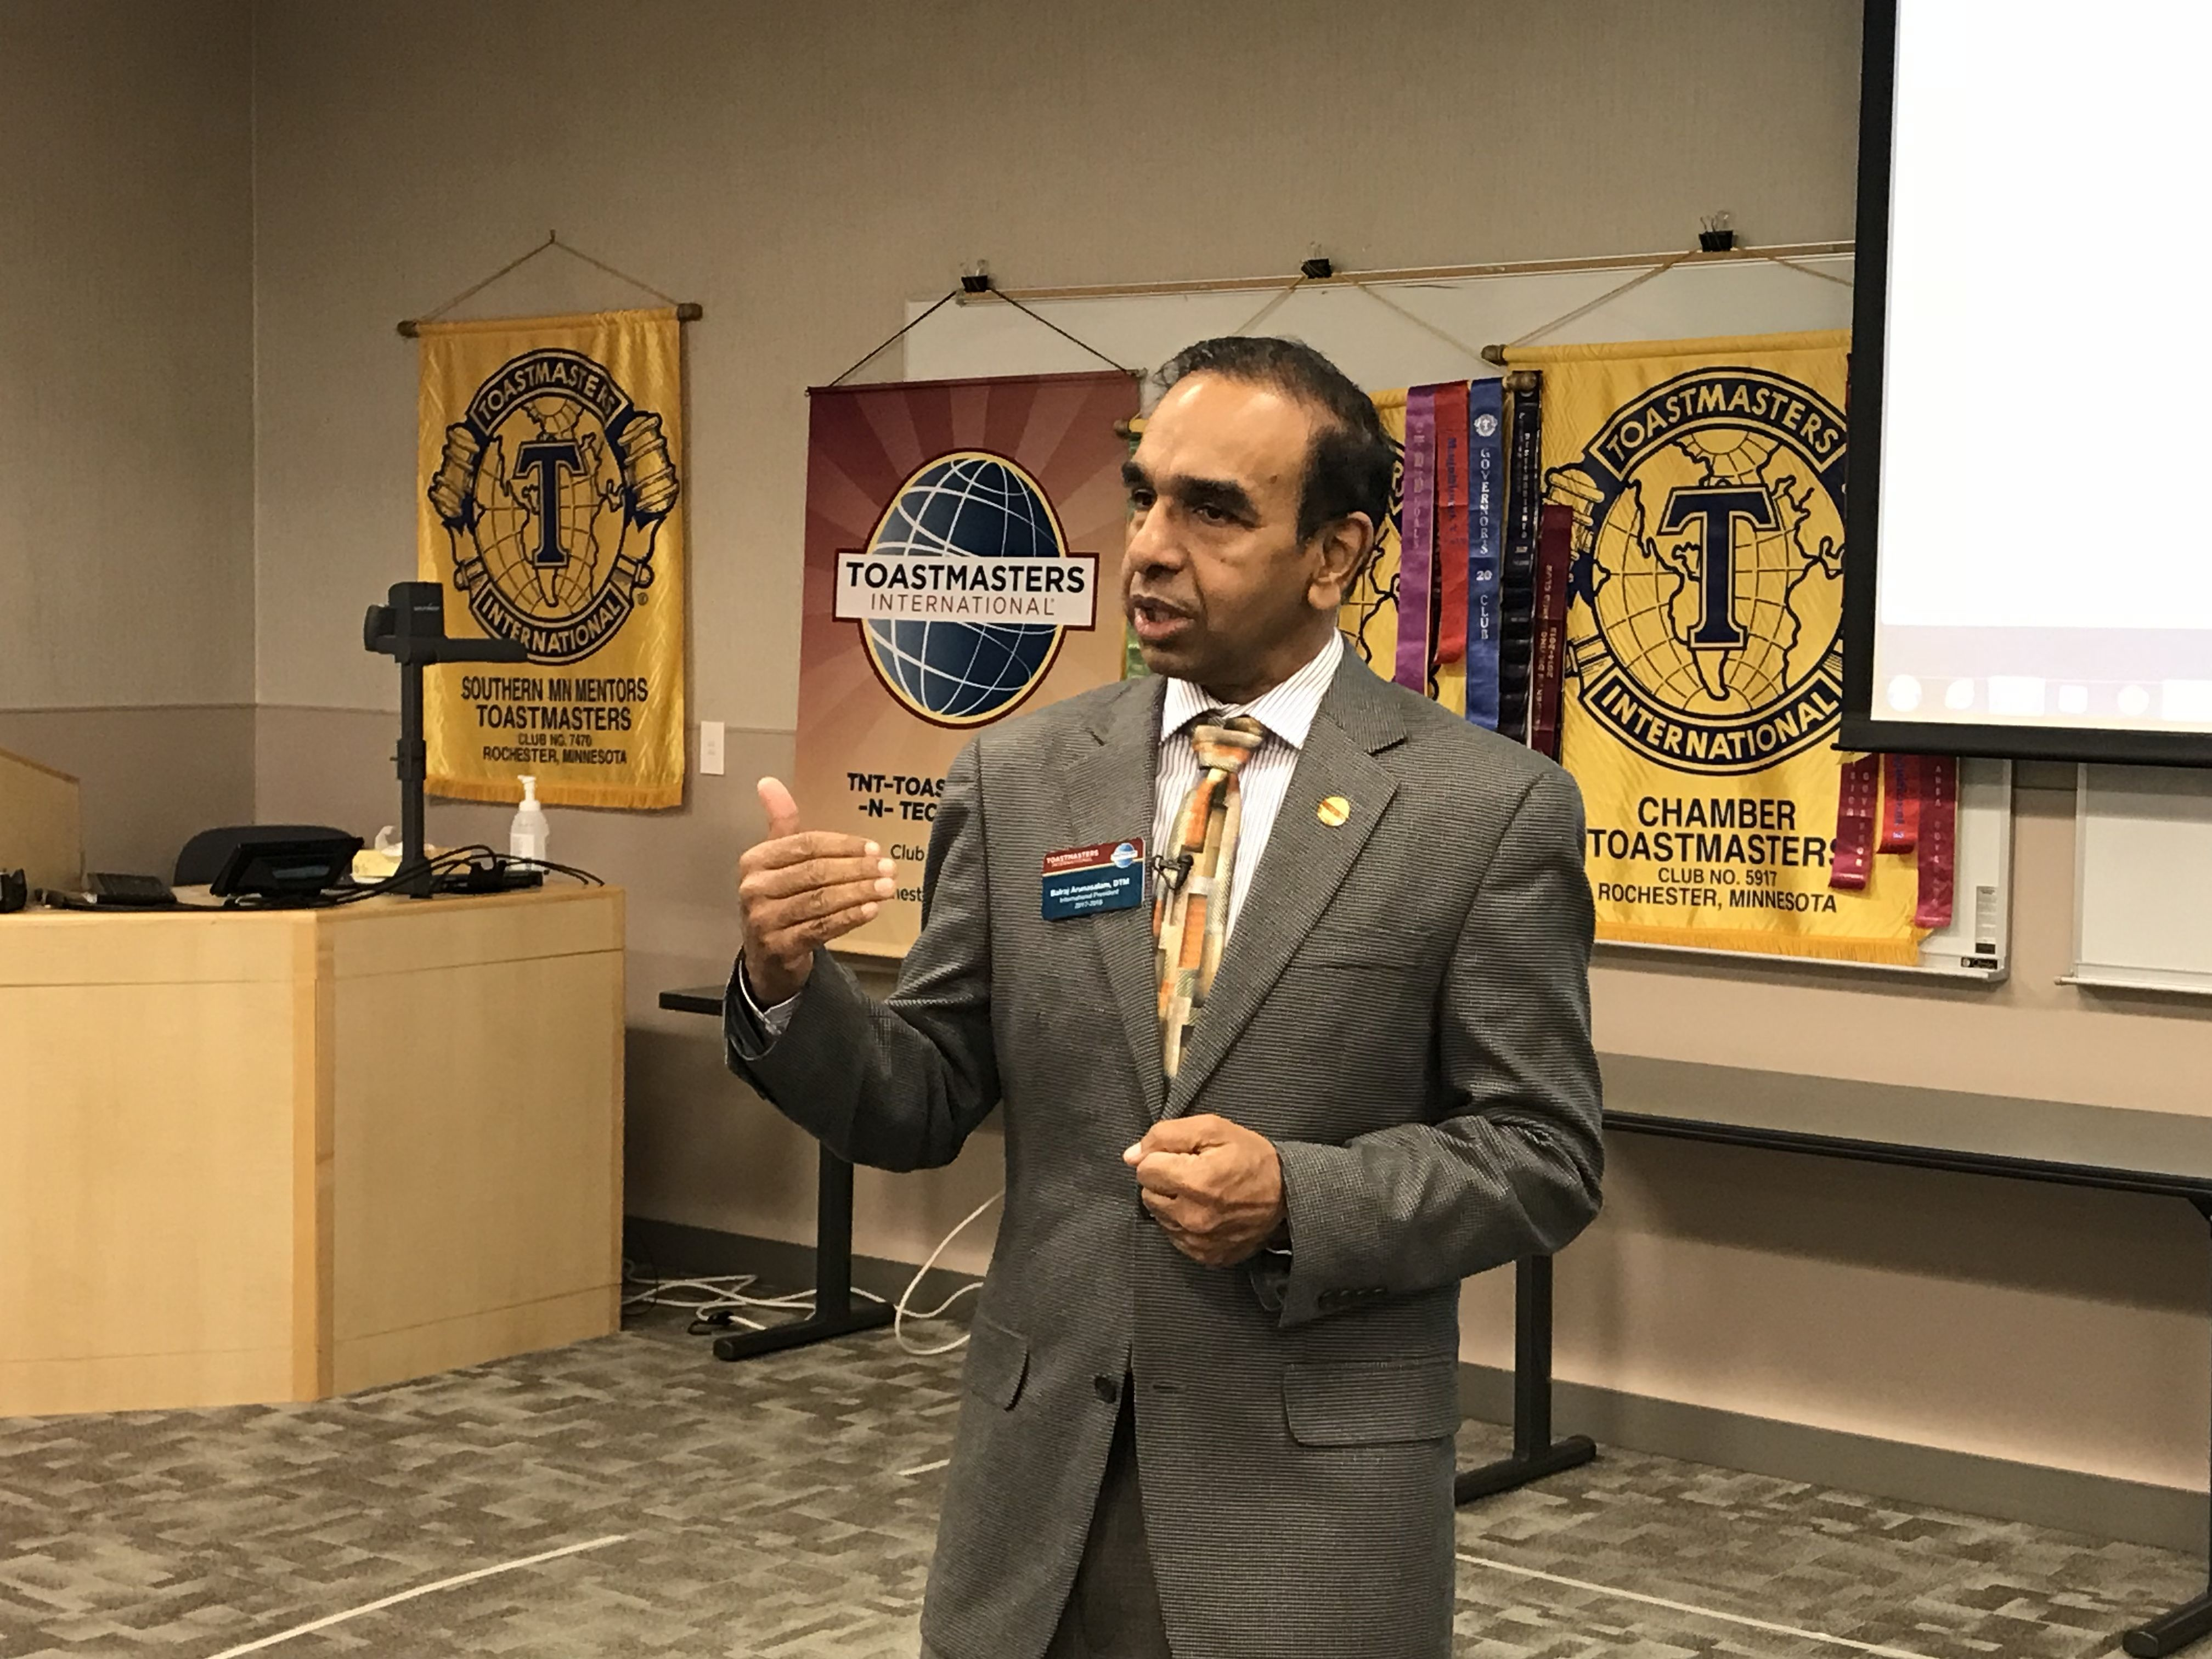 b3b143cf2 #Toastmasters Intl President says we can change lives everyday with our  leadership program #dtm6 #rochmn #meetup #rochestercvb #rochester_mn